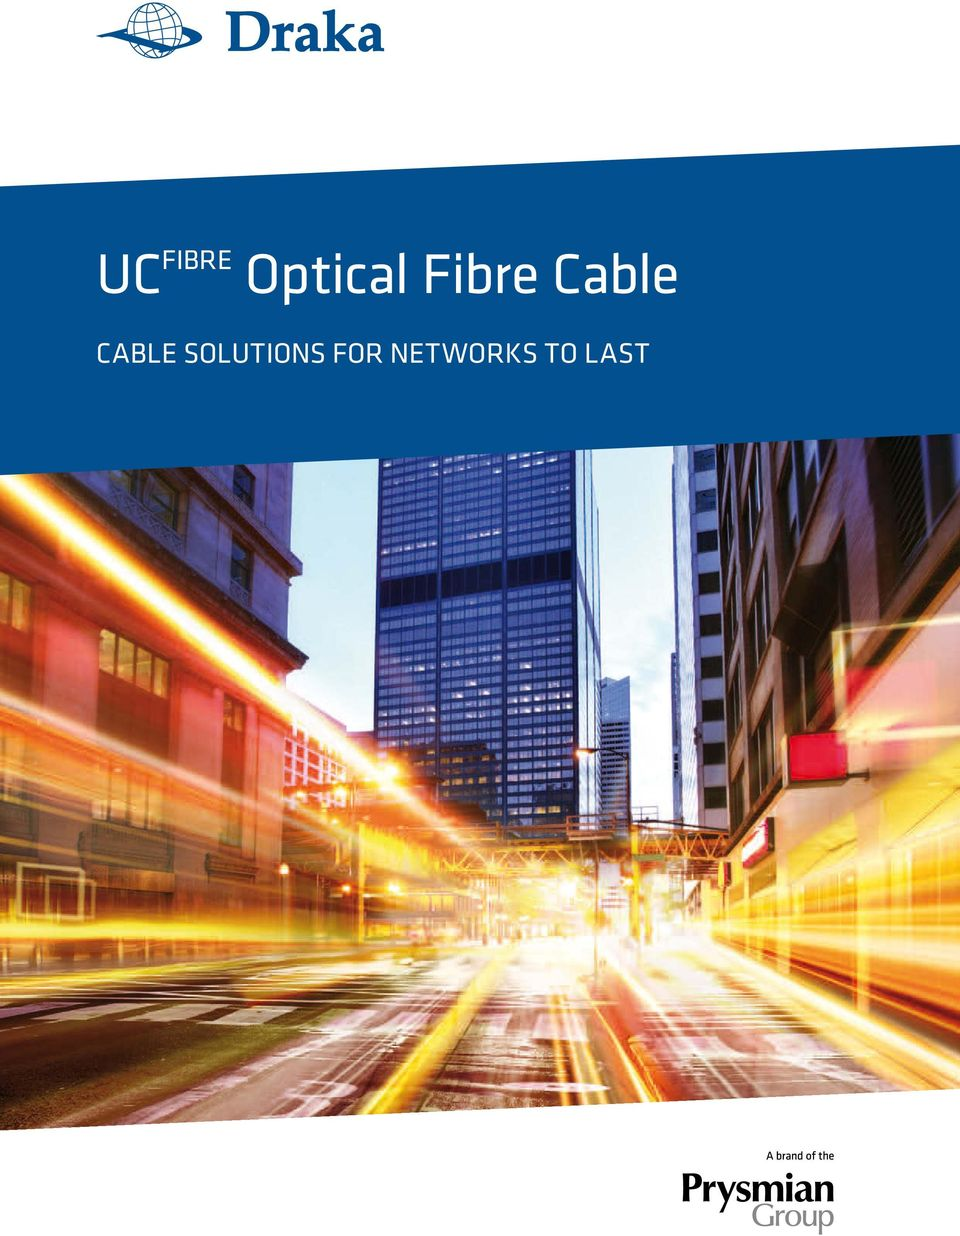 Uc Fibre Optical Cable Solutions For Networks To Last Pdf Fiber Optic Cablethe Global Solution In Components 2 Prysmian Group A Leading Player The Industry 2011 Will Go Down History Of As Founding Year Successful Merger